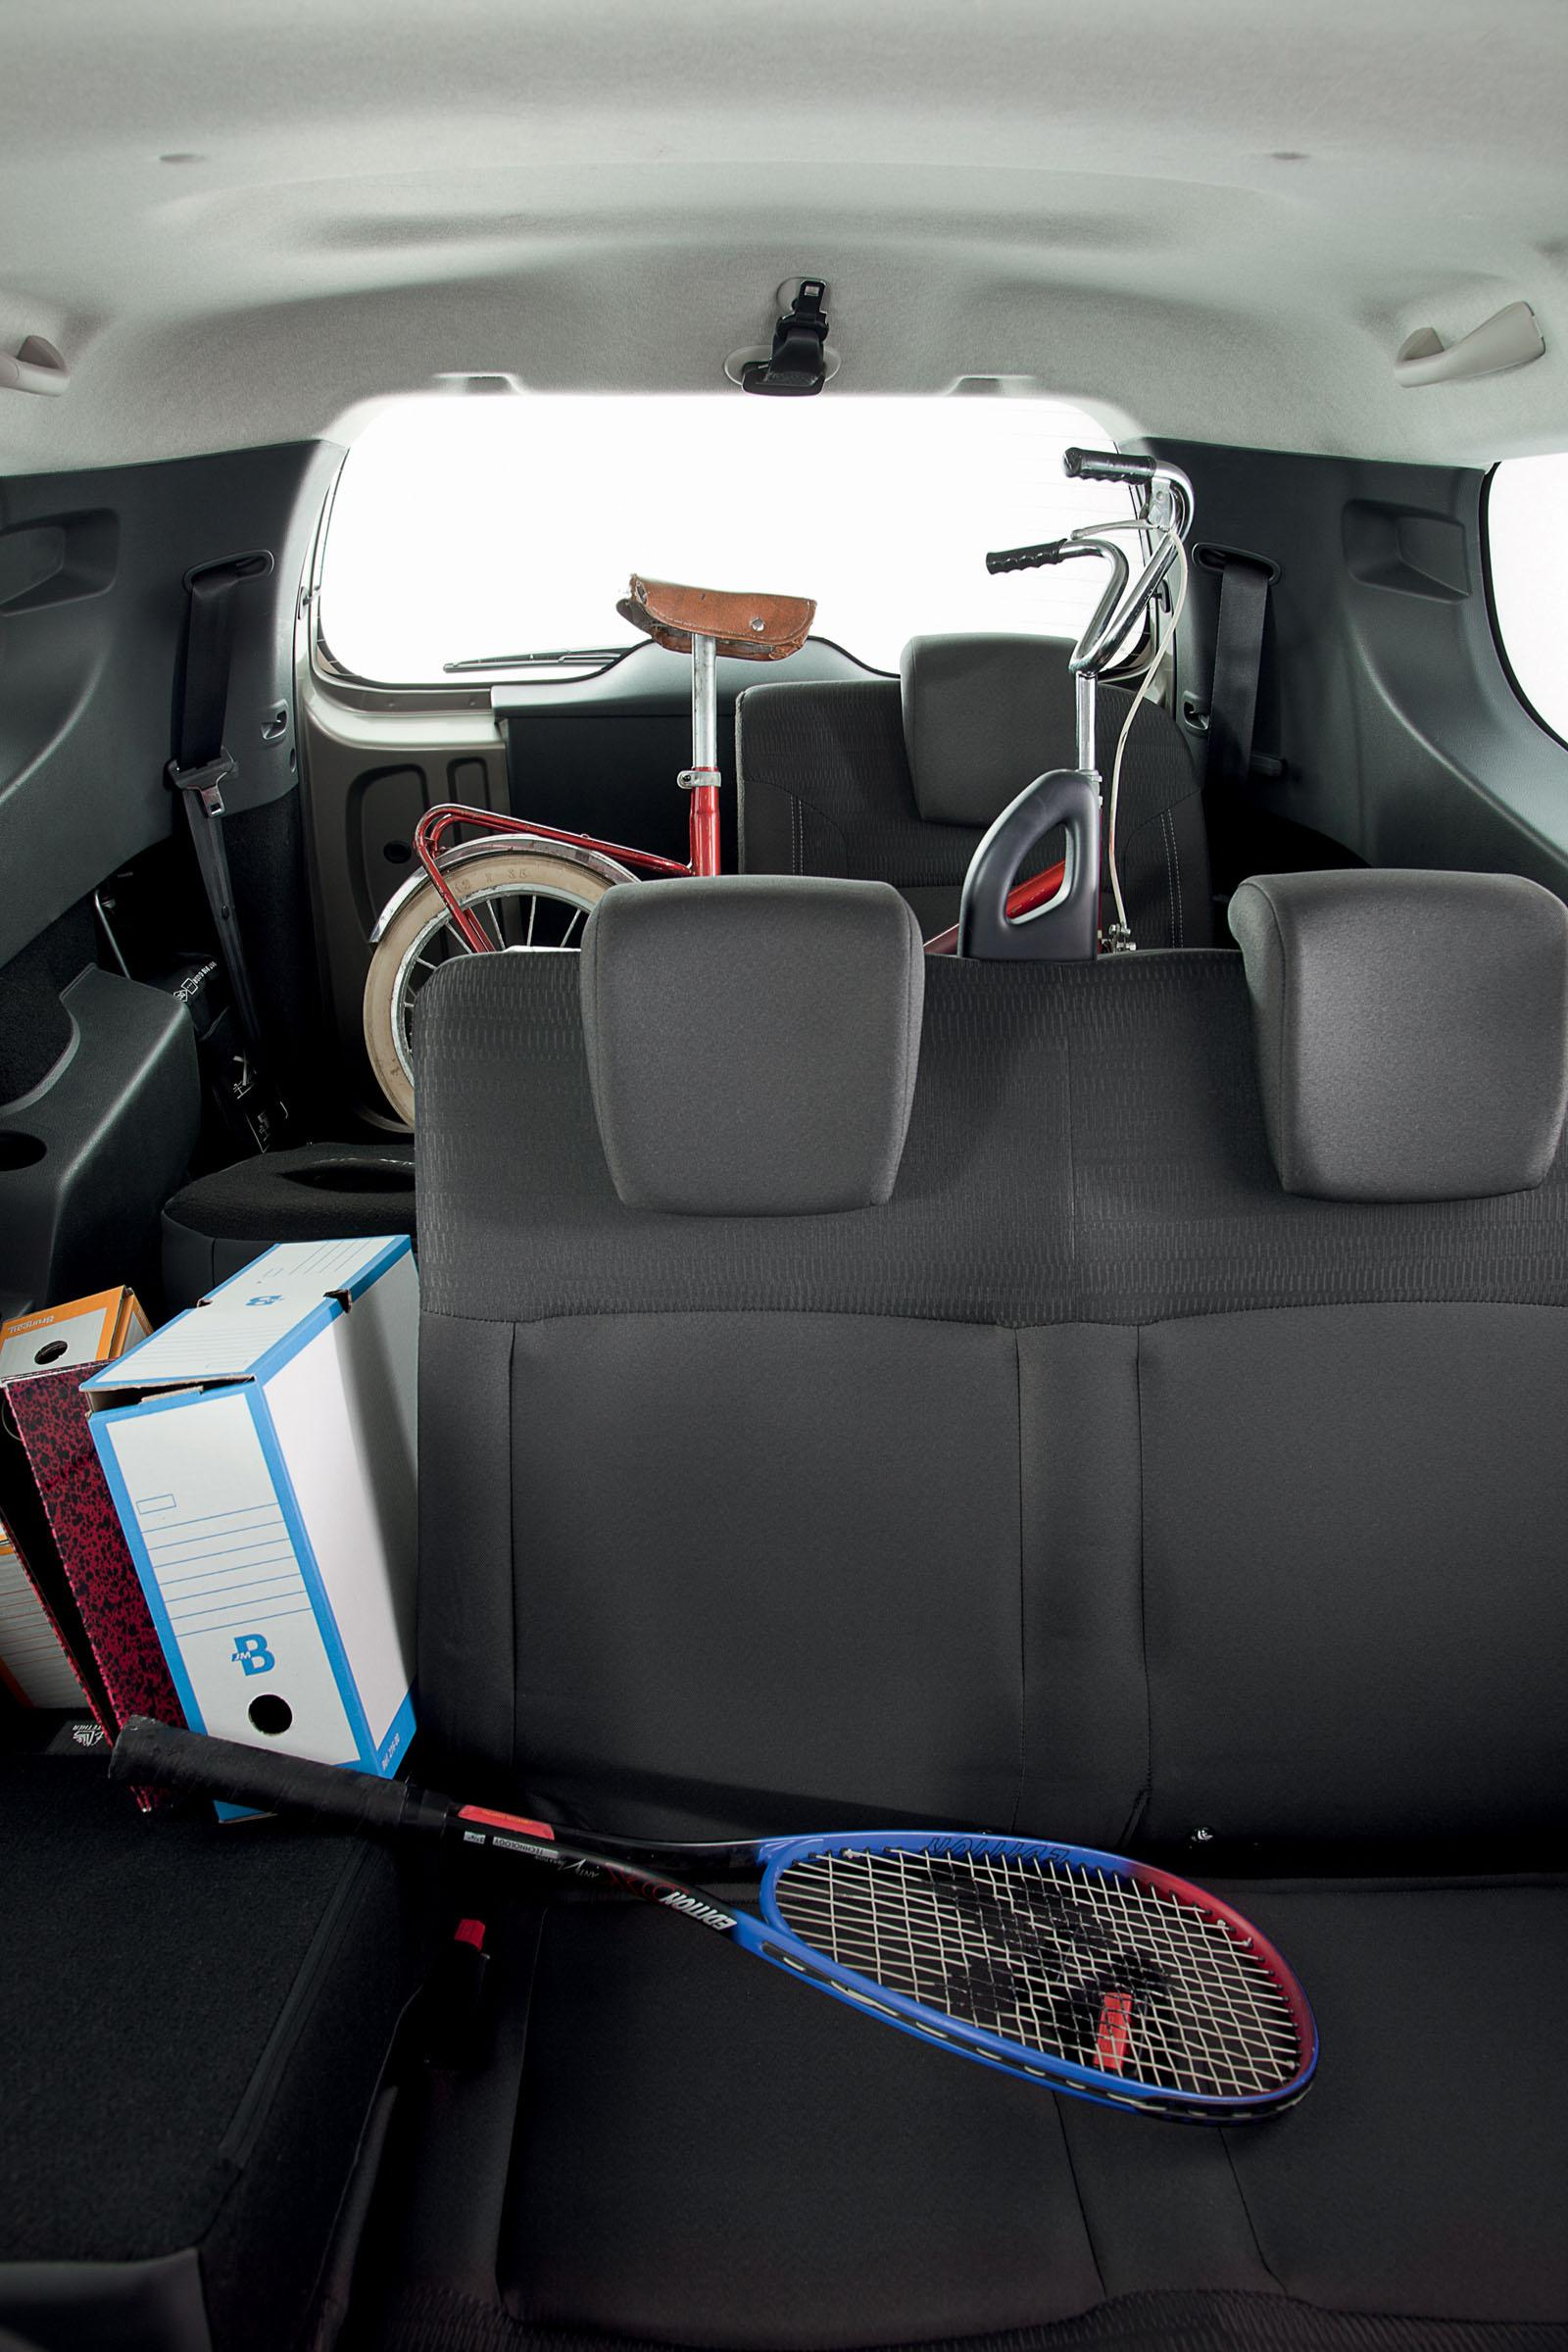 2012 dacia lodgy picture 66537. Black Bedroom Furniture Sets. Home Design Ideas